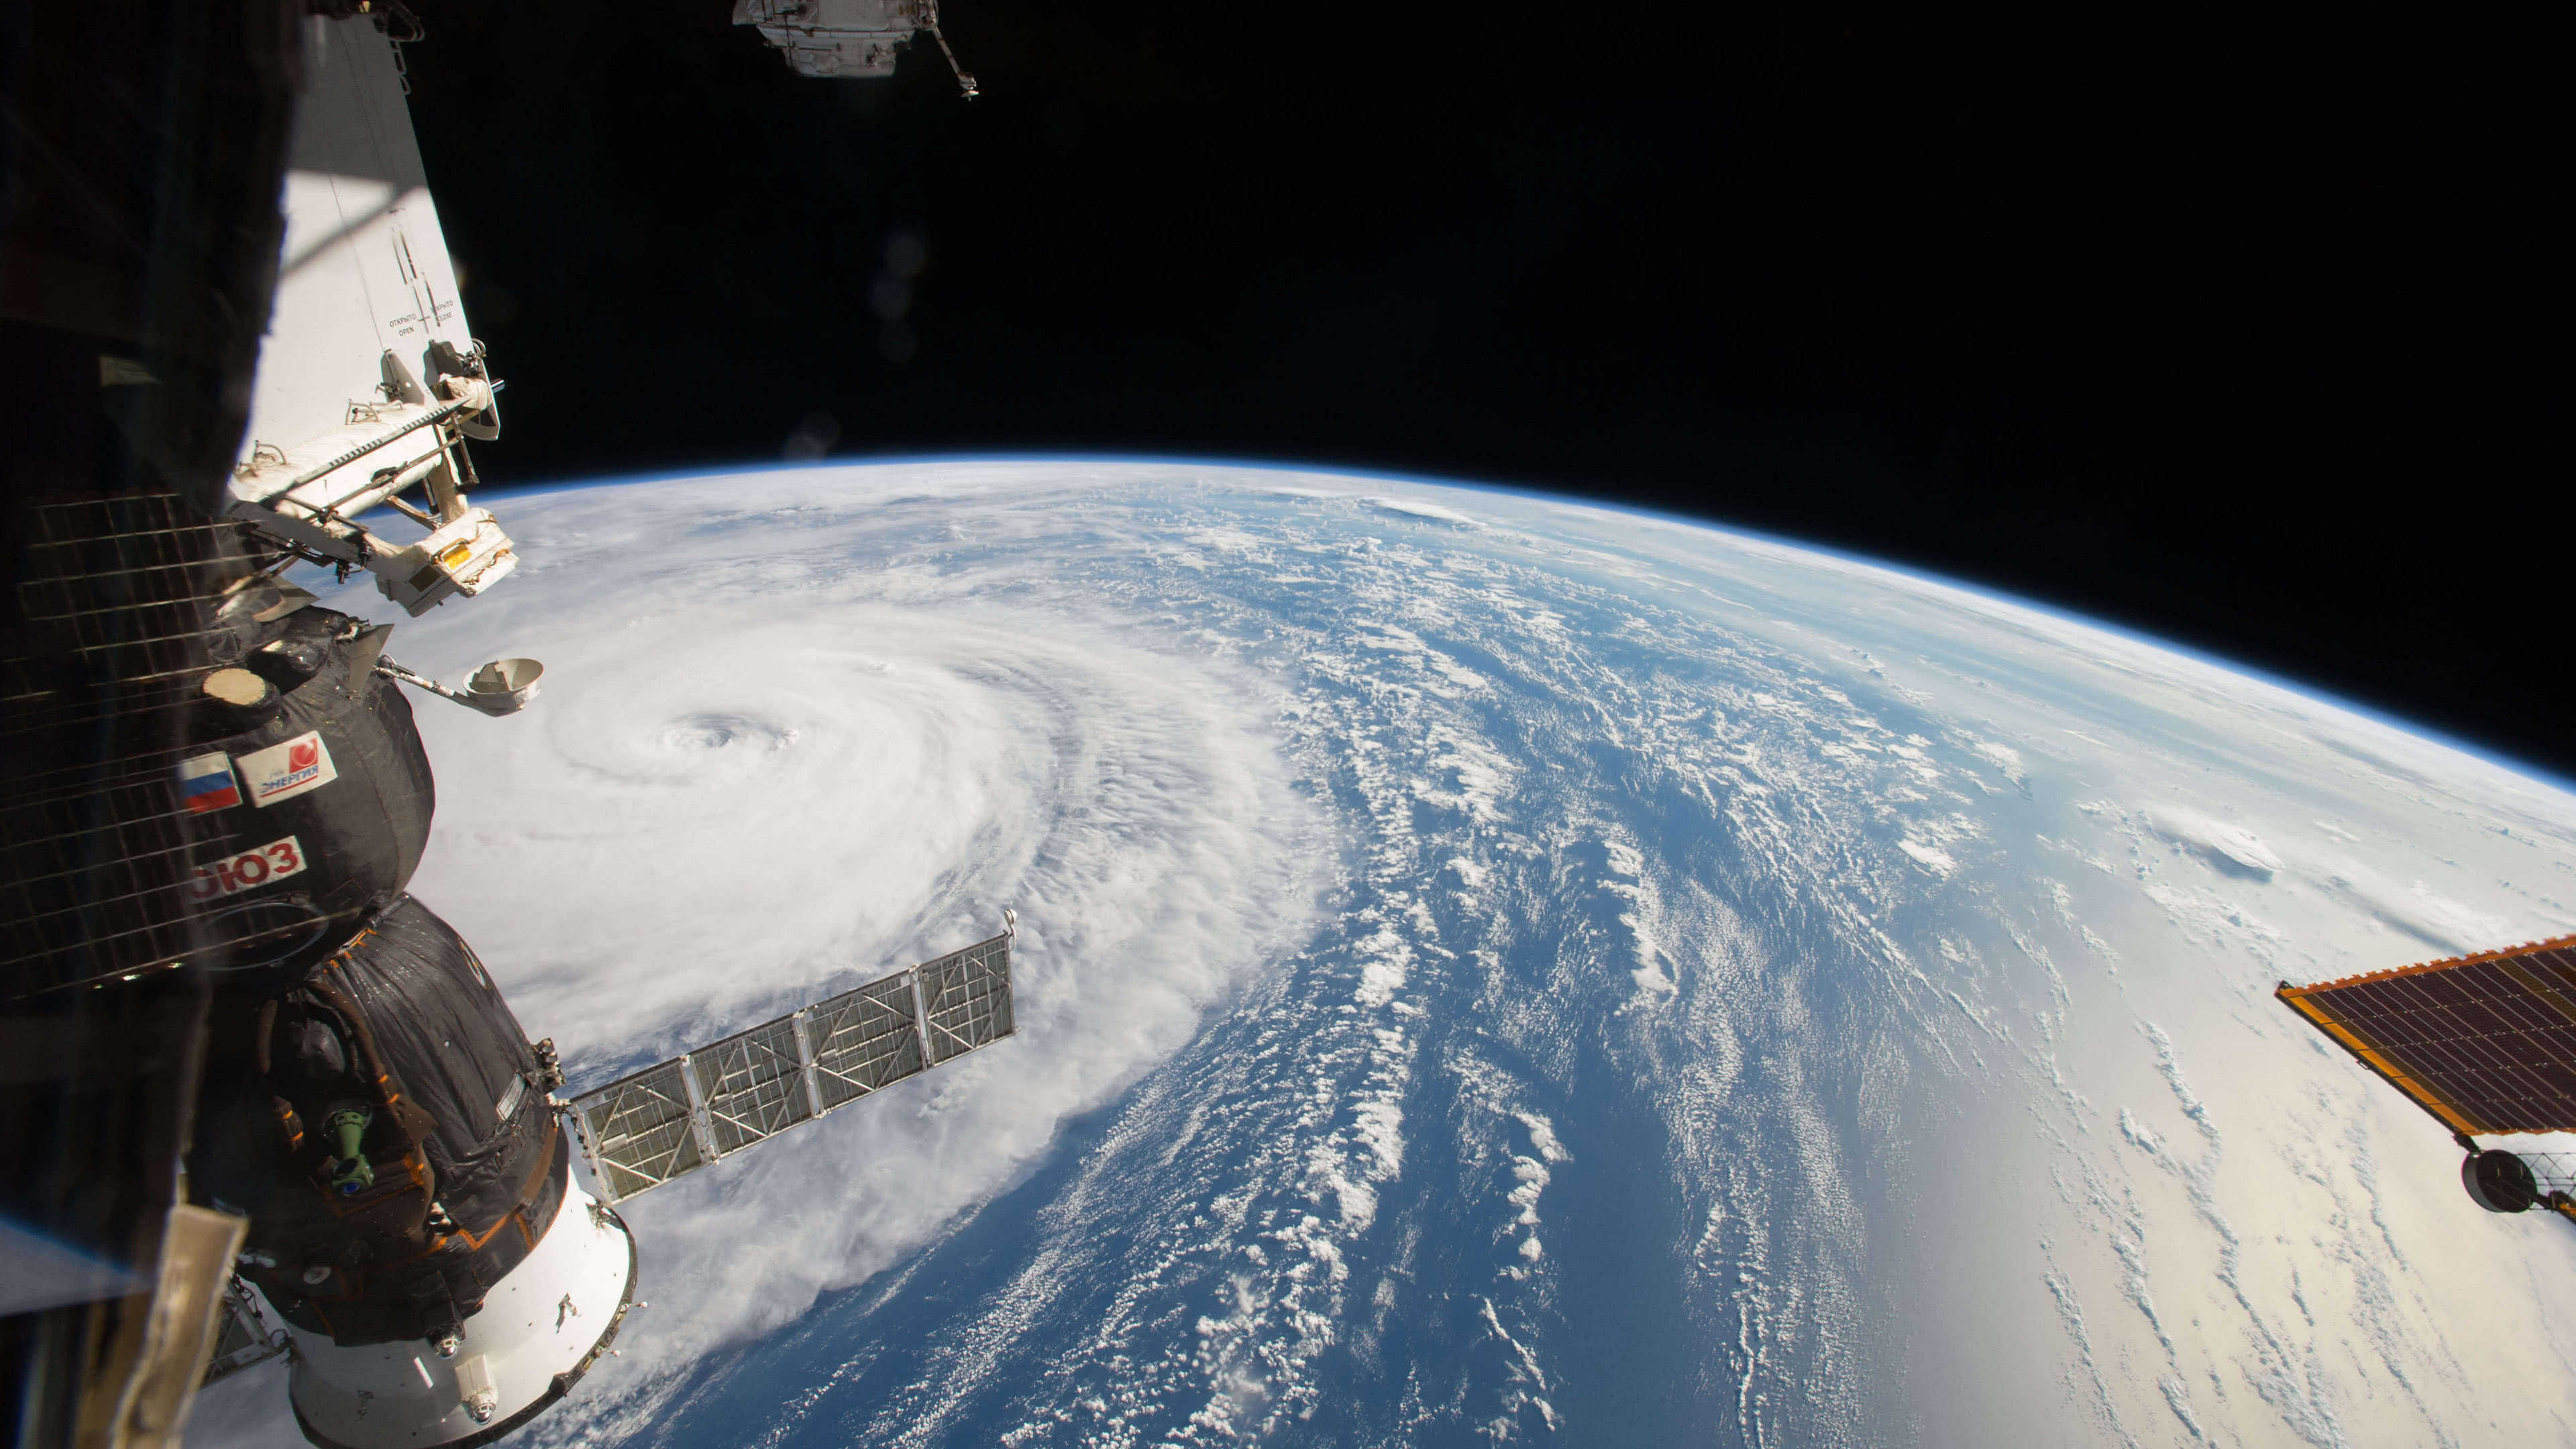 Iss Wallpapers Hd: ISS Typhoon Noru UHD 4K Wallpaper